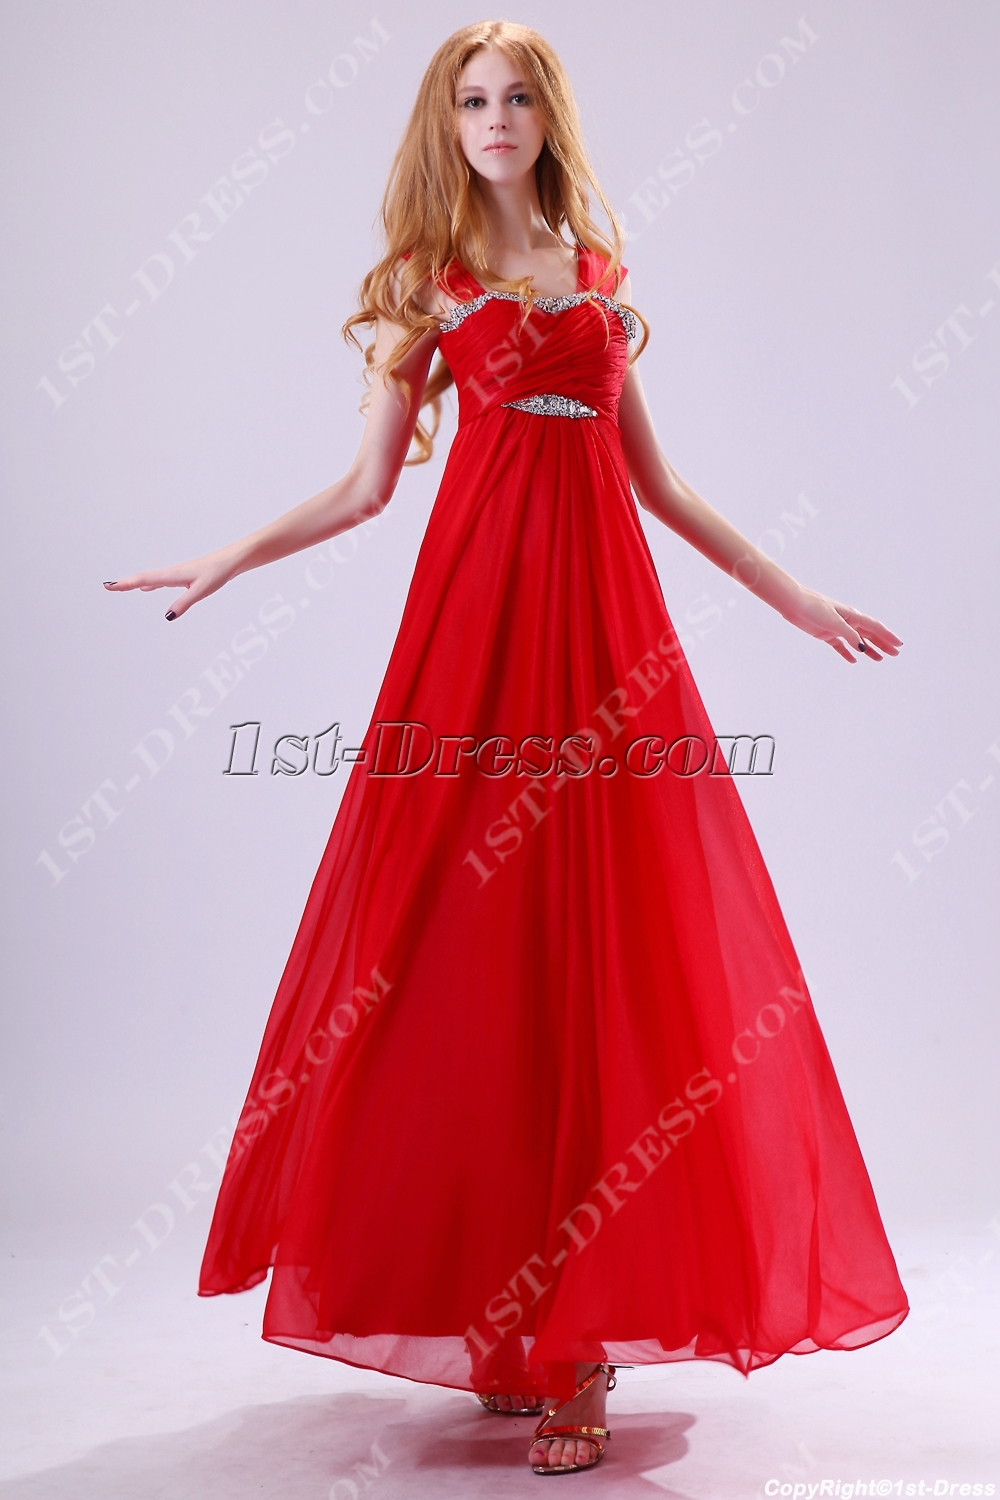 Red Straps Plus Size Graduation Dresses for 8th Grade Girls